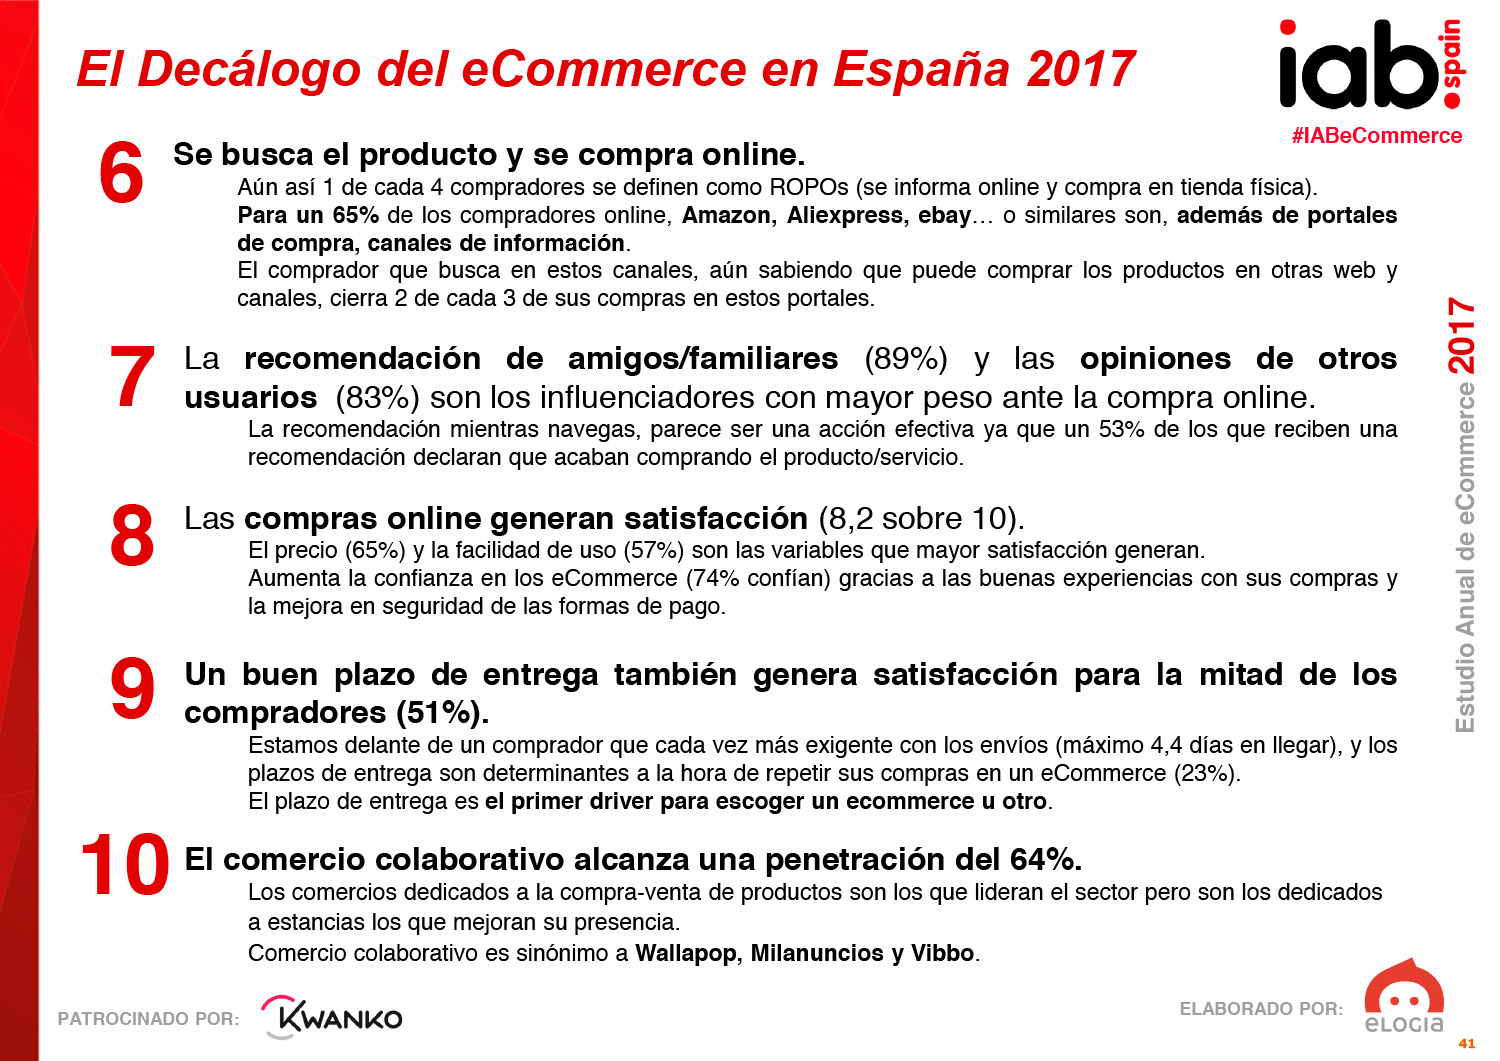 Estudio de eCommerce 2017 de IAB Spain